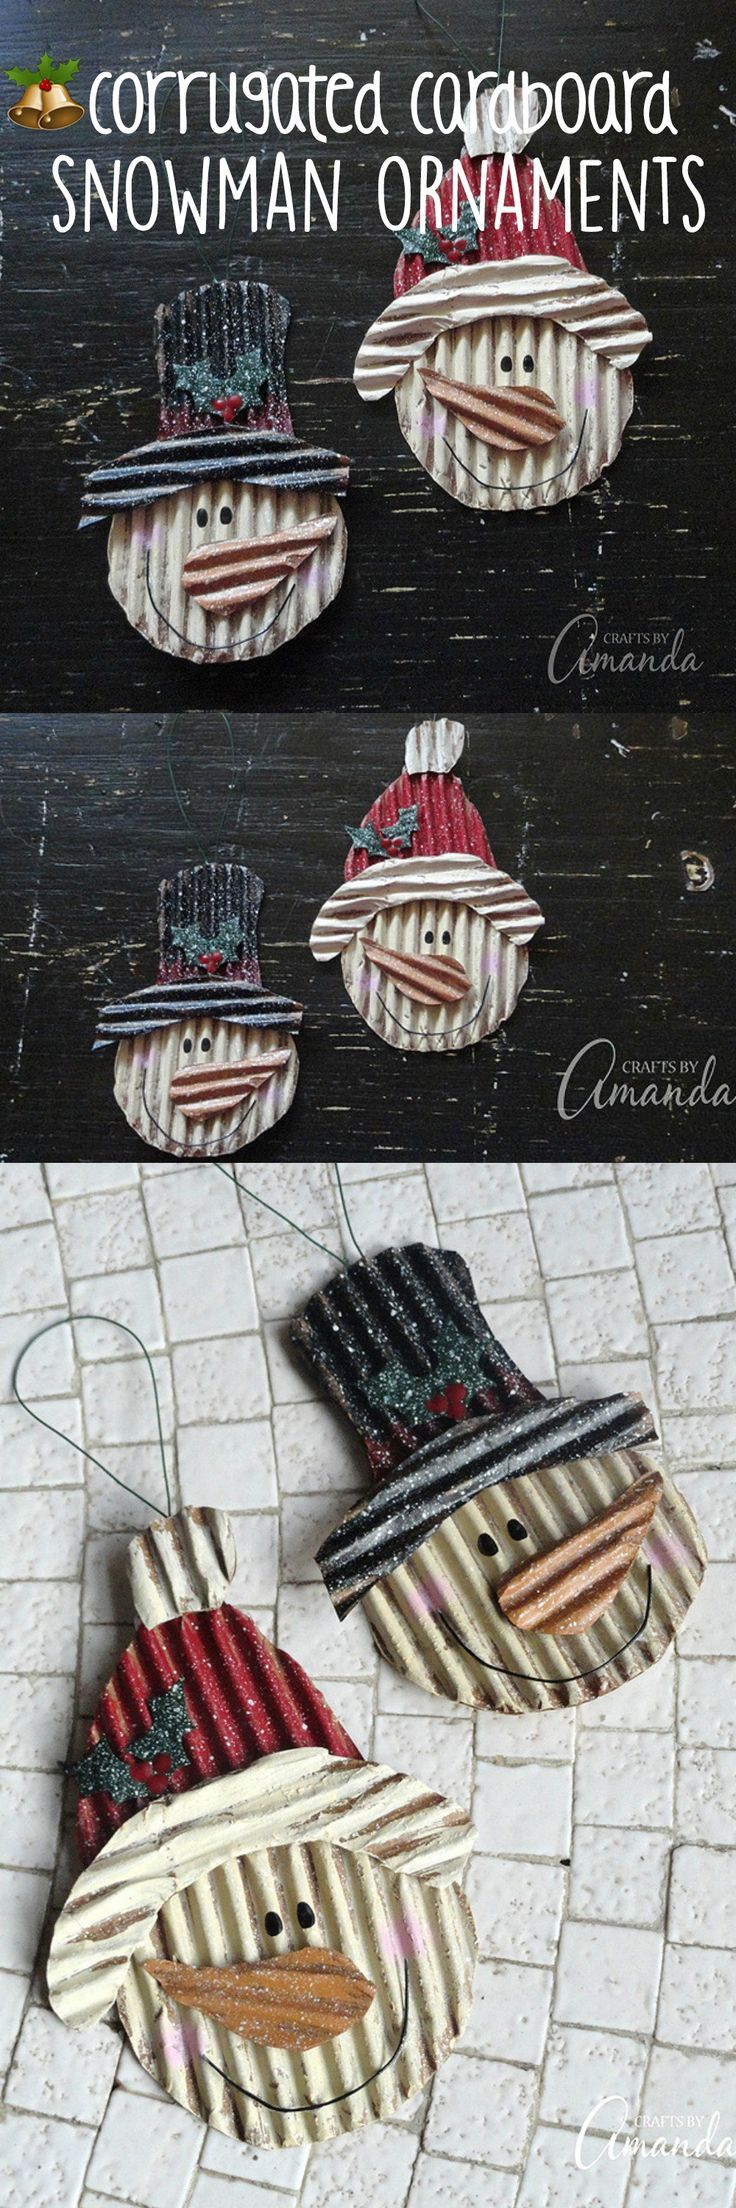 I adore snowmen, and every year I try to make at least one new snowman ornament. These corrugated cardboard snowman ornaments are one of my favorites!